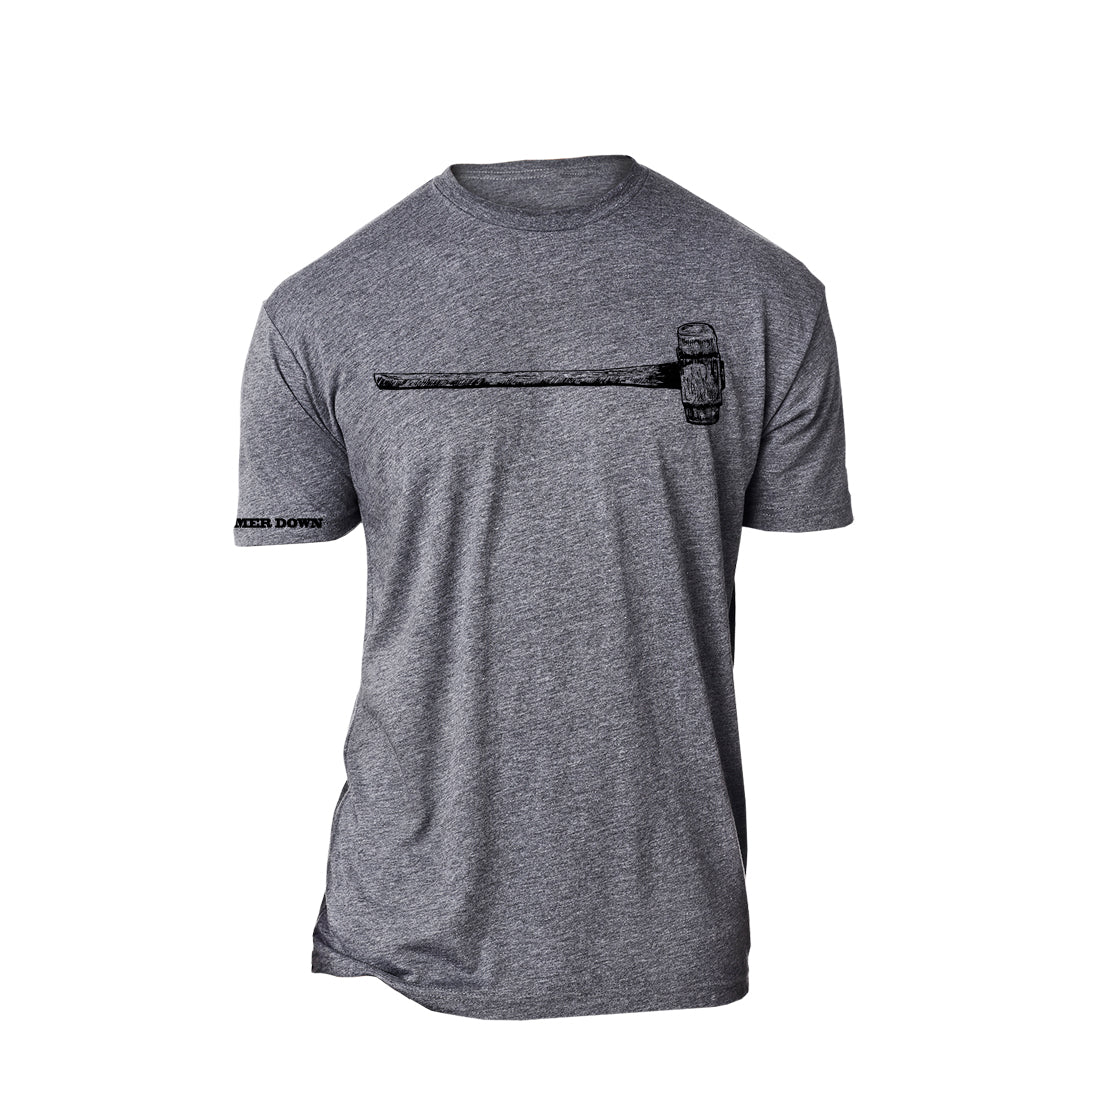 "Hammer Down ""Sledgehammer Drawing"" Short Sleeve Tee Tri Blend Premium Heather Gray Adult Unisex"